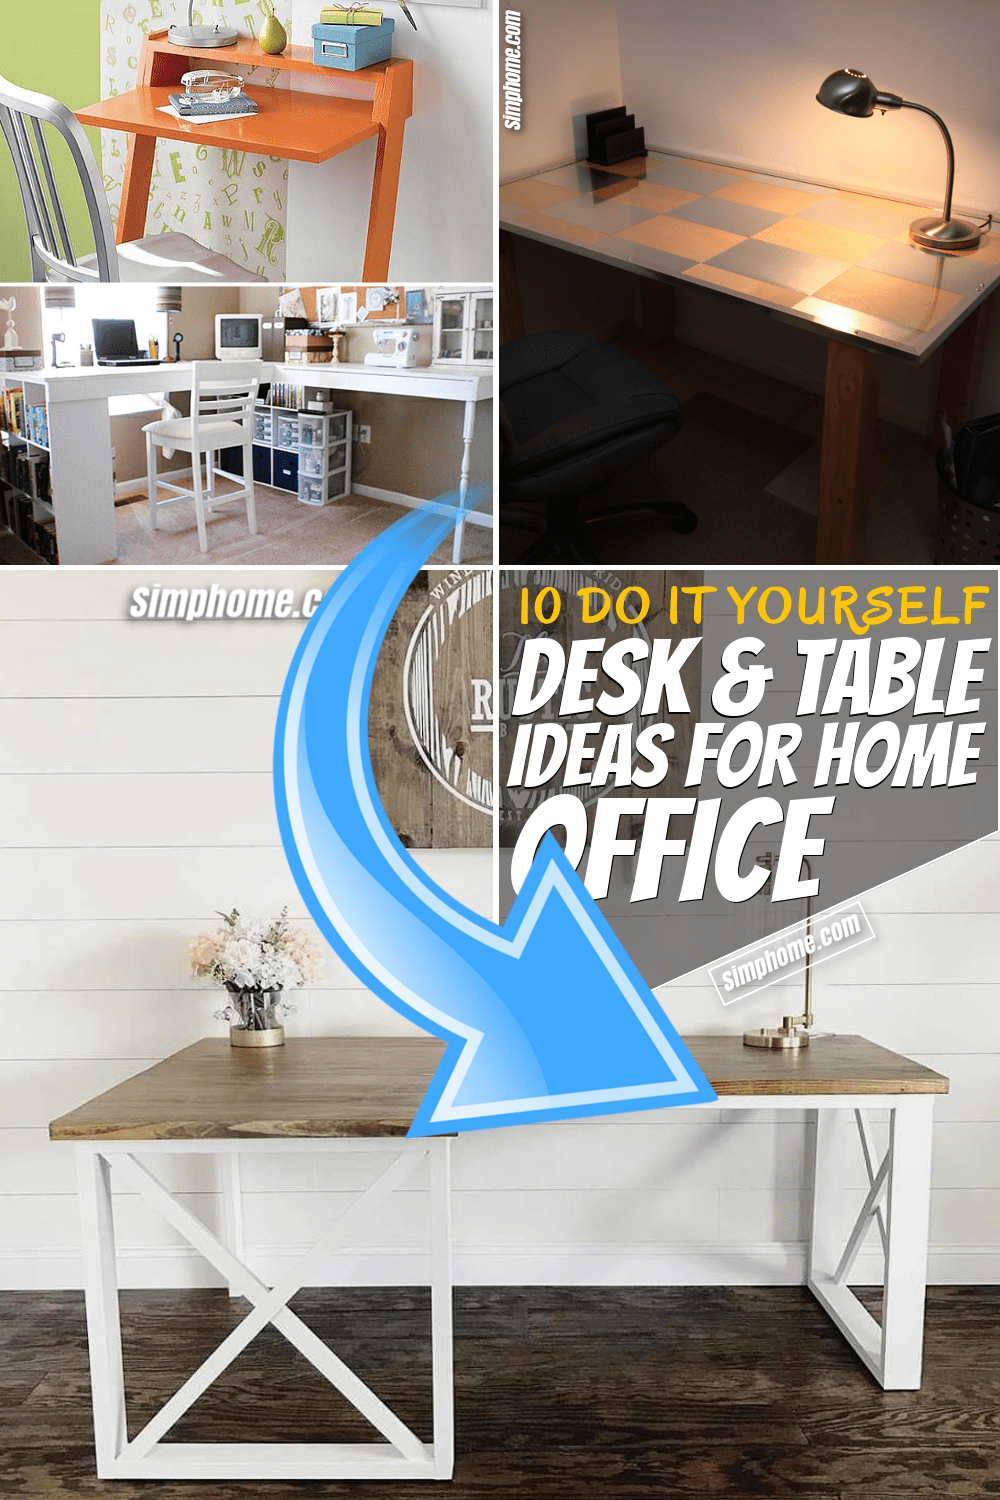 10 Diy Desk And Table Ideas For A Home Office Simphome